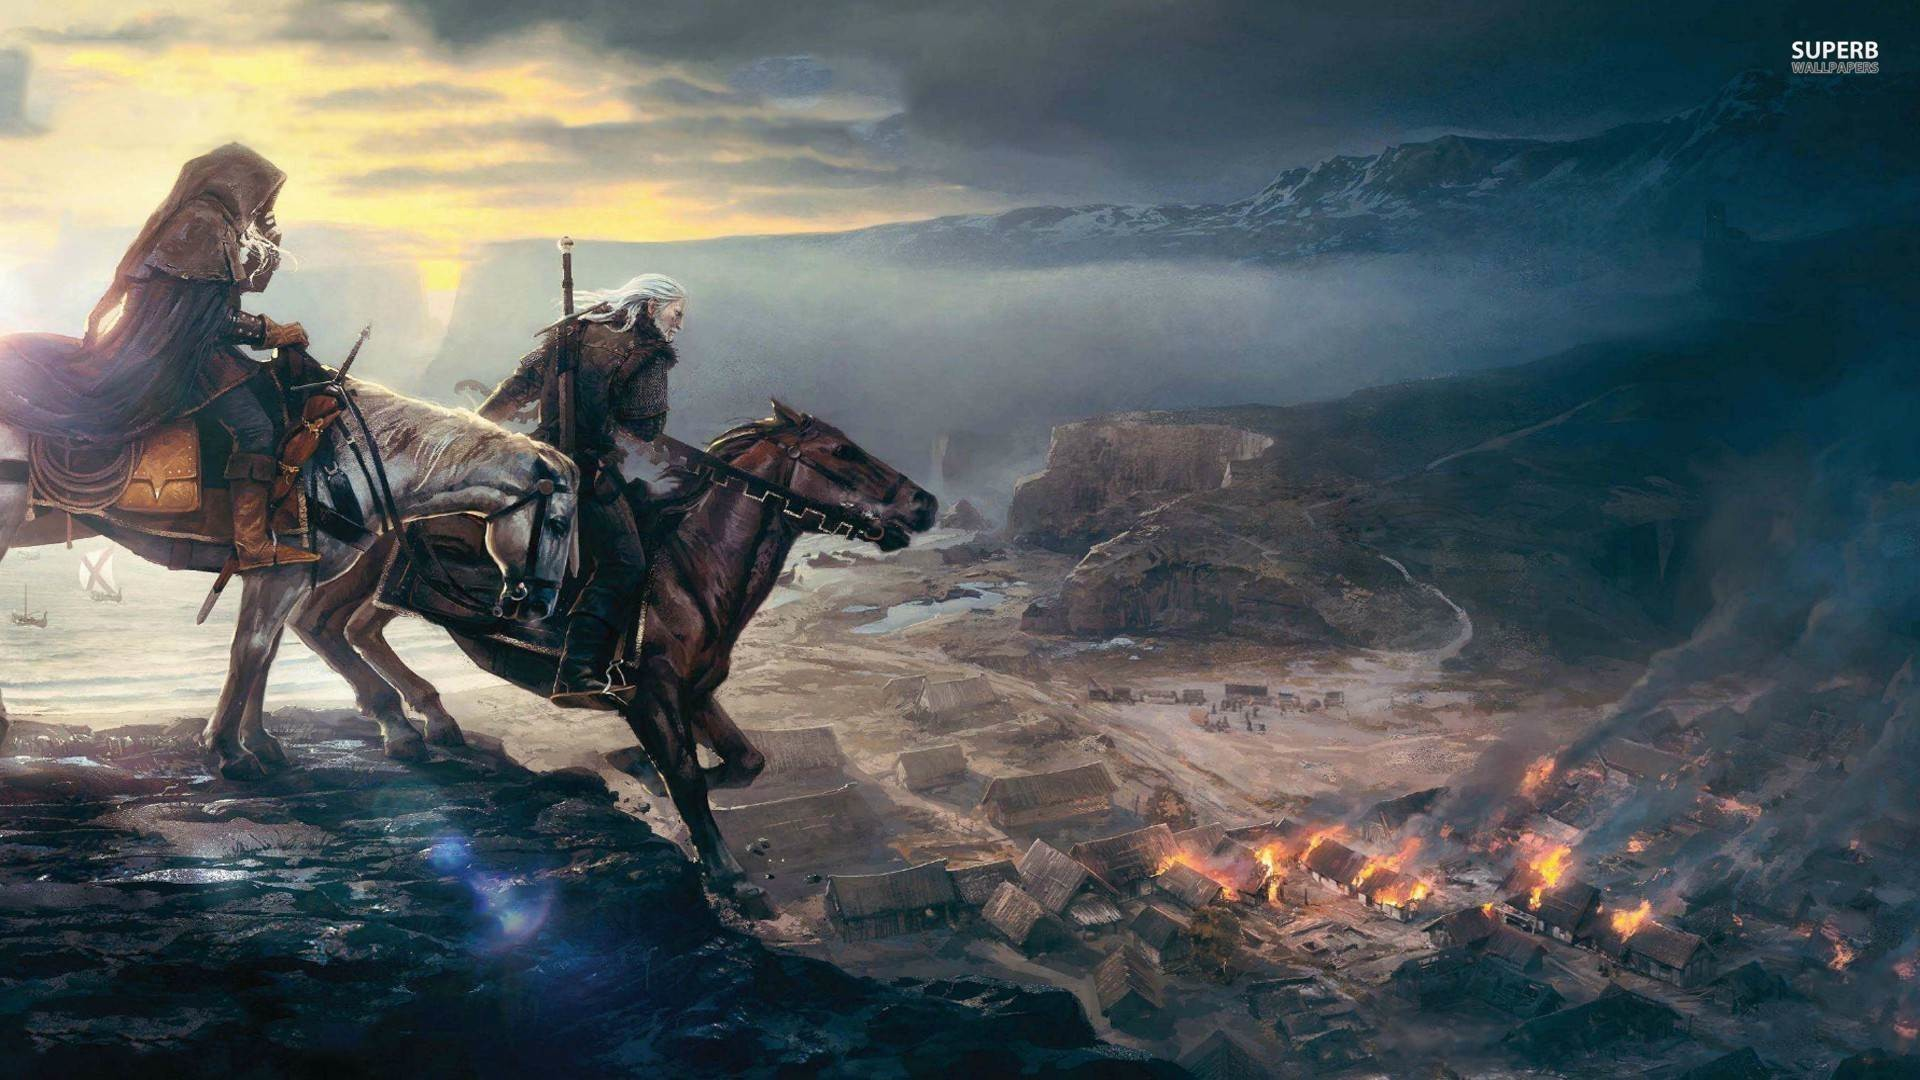 The Witcher 3 1080p Wallpaper –